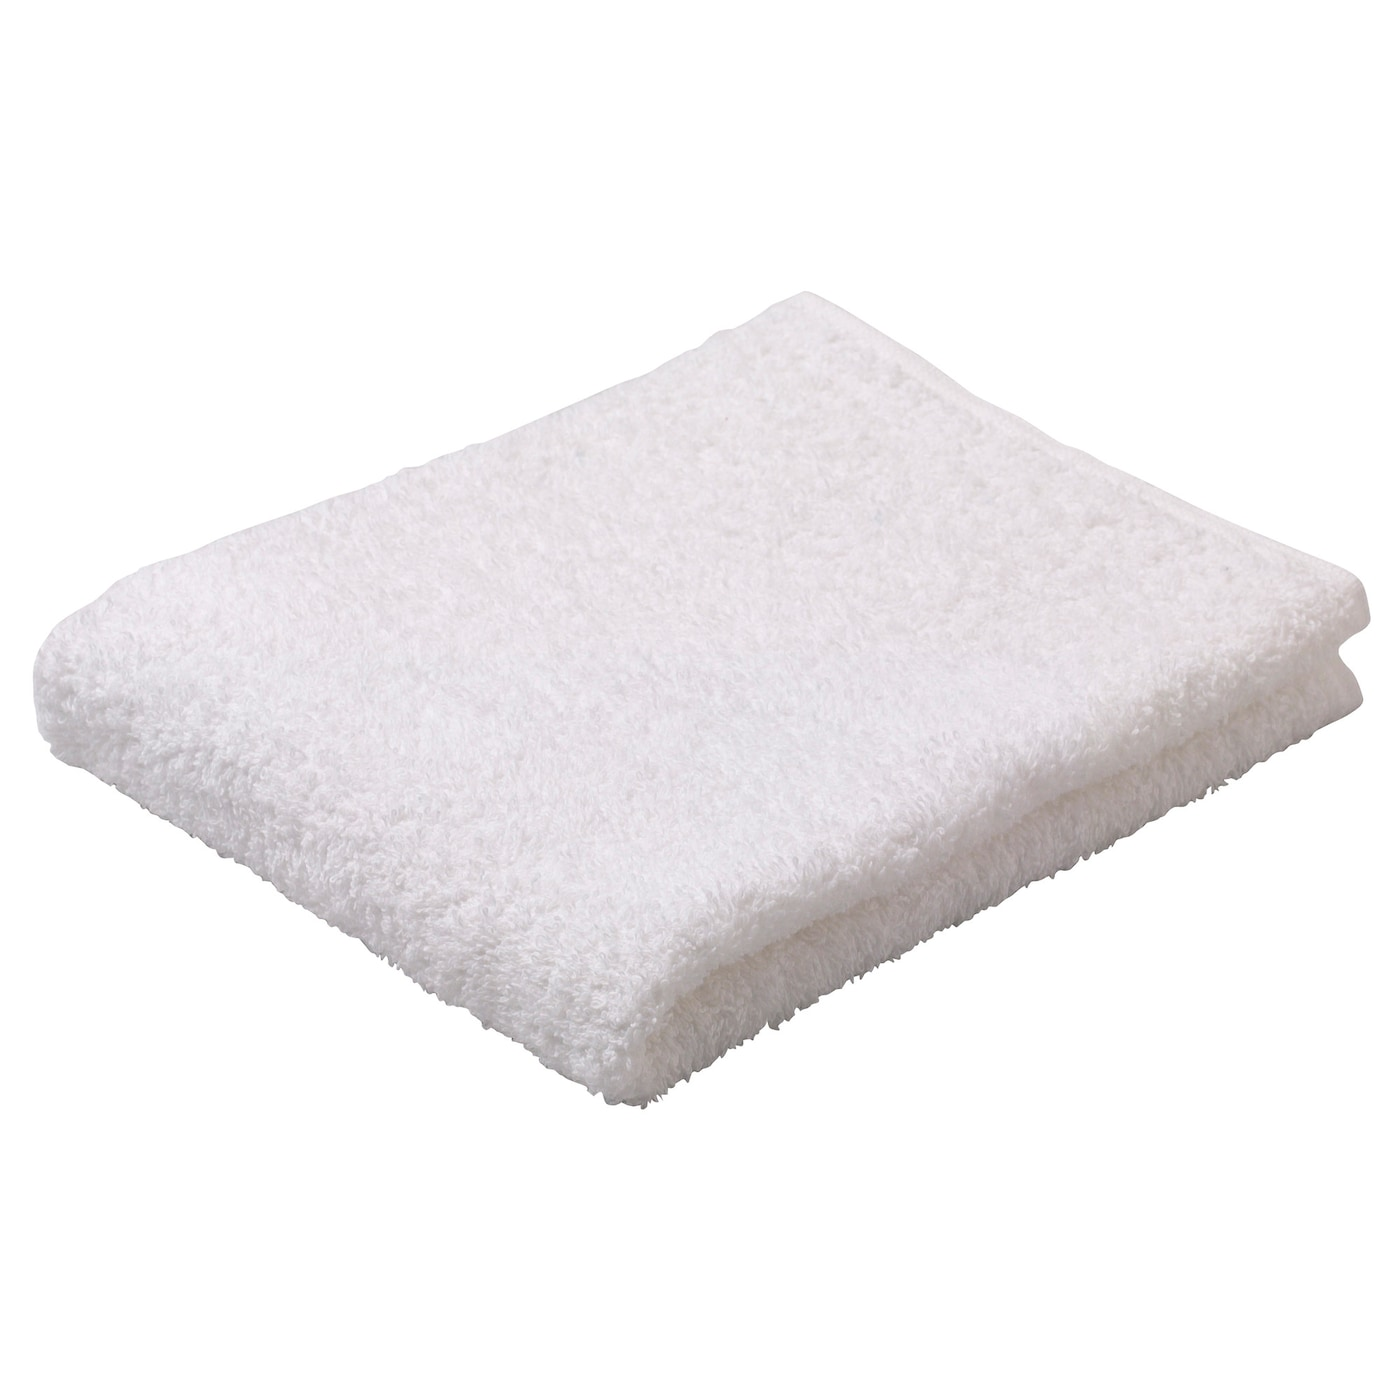 IKEA NÄCKTEN bath towel A terry towel that is soft and absorbent (weight 320 g/m²).